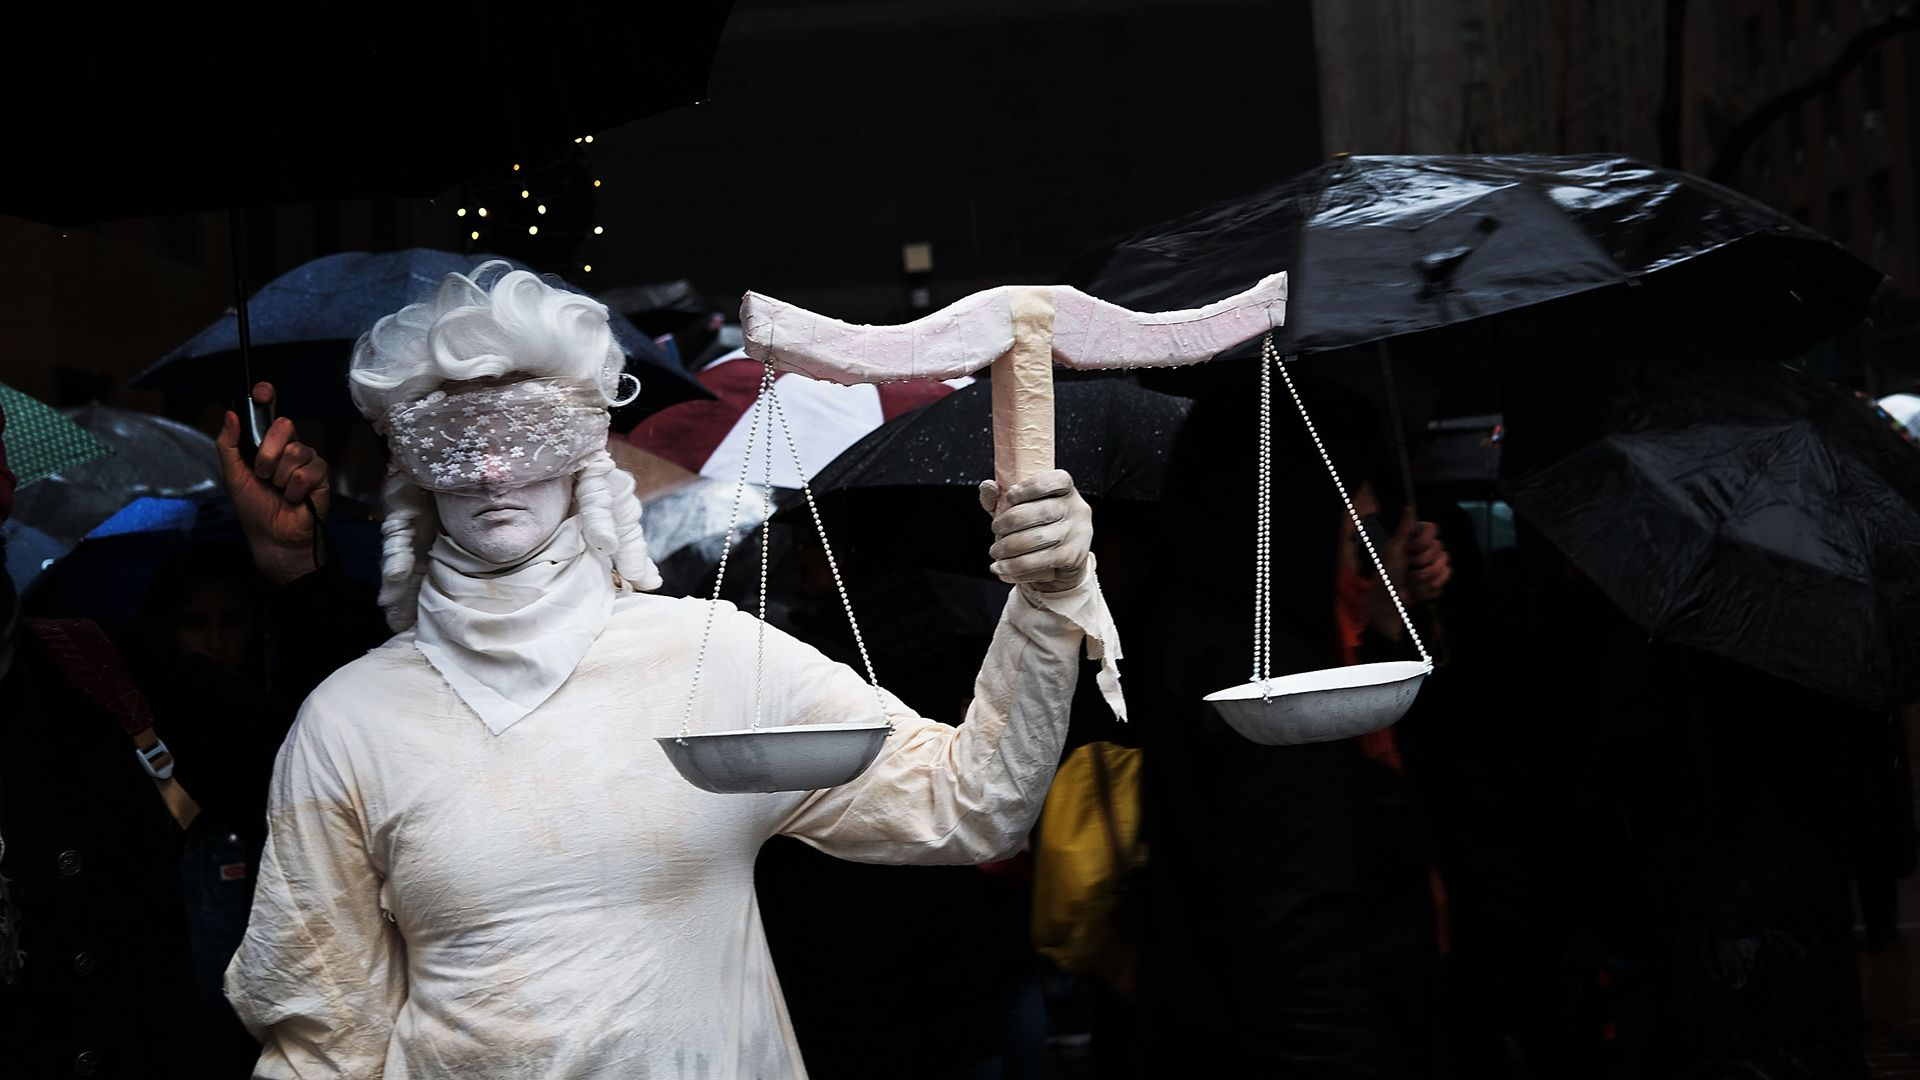 Woman dressed as lady justice blind folded